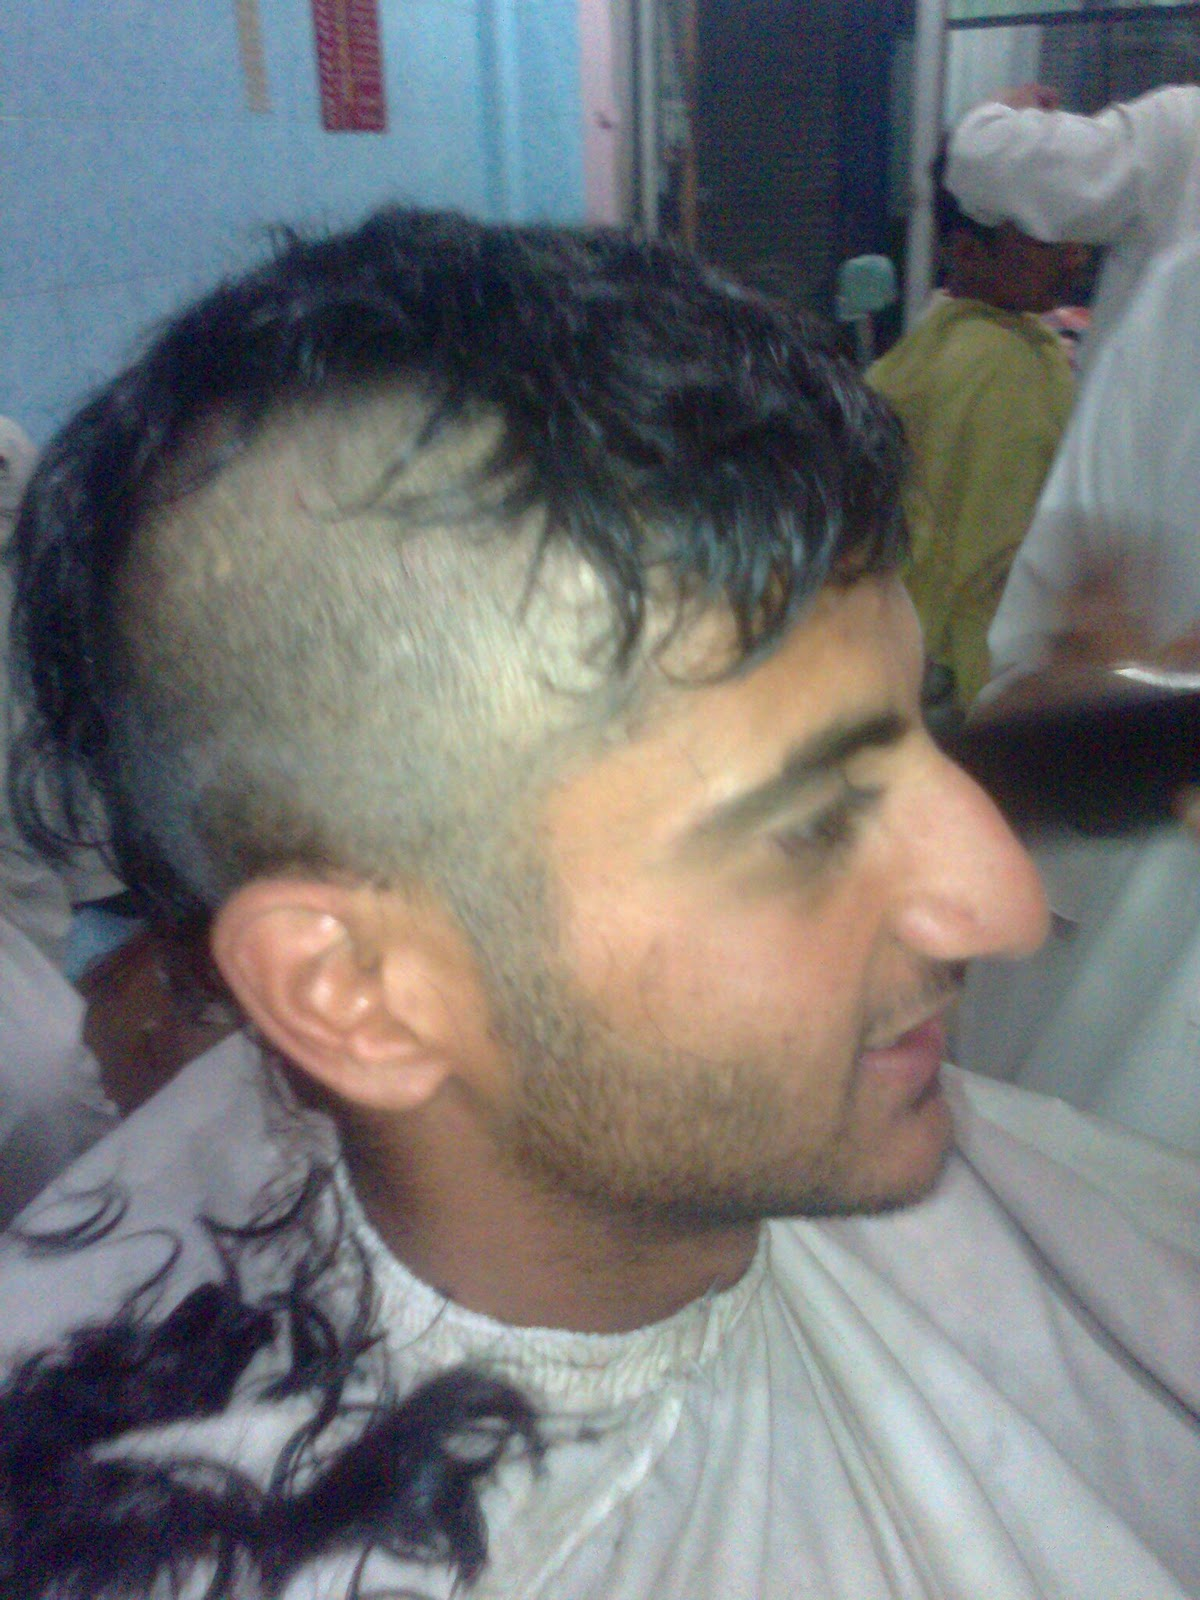 Junaid Aashiq From Wah Cantt Cutting Hairs